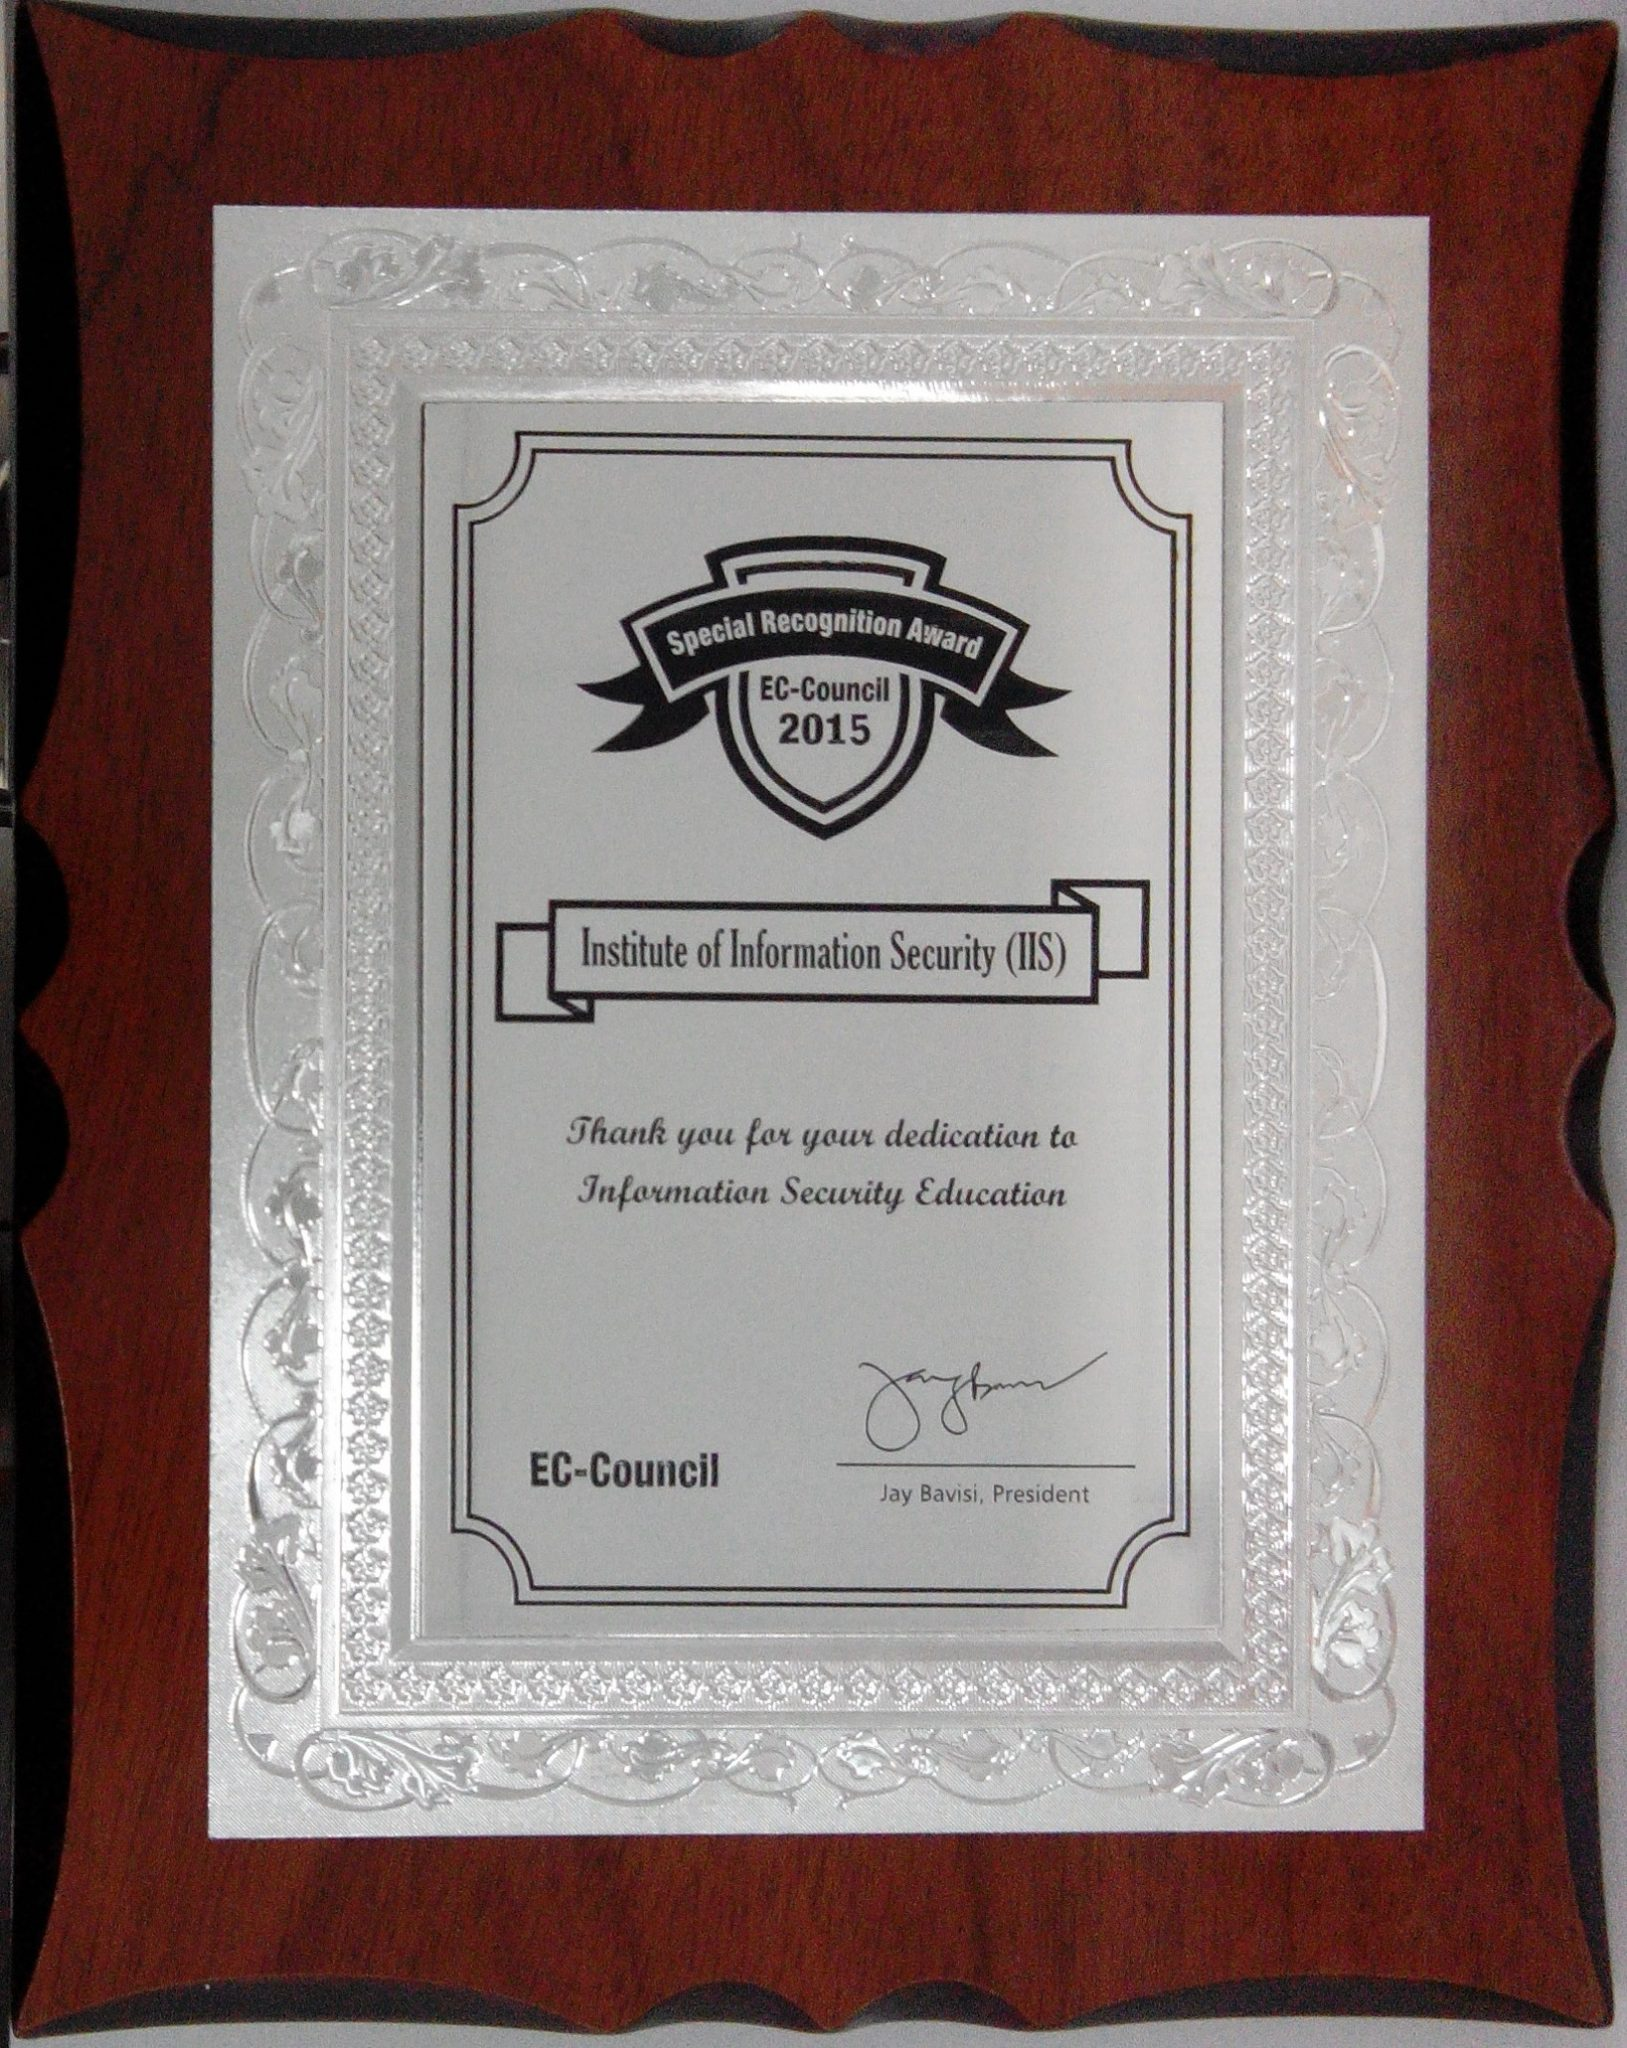 Special-Recognition-Award-ECCOUNCIL